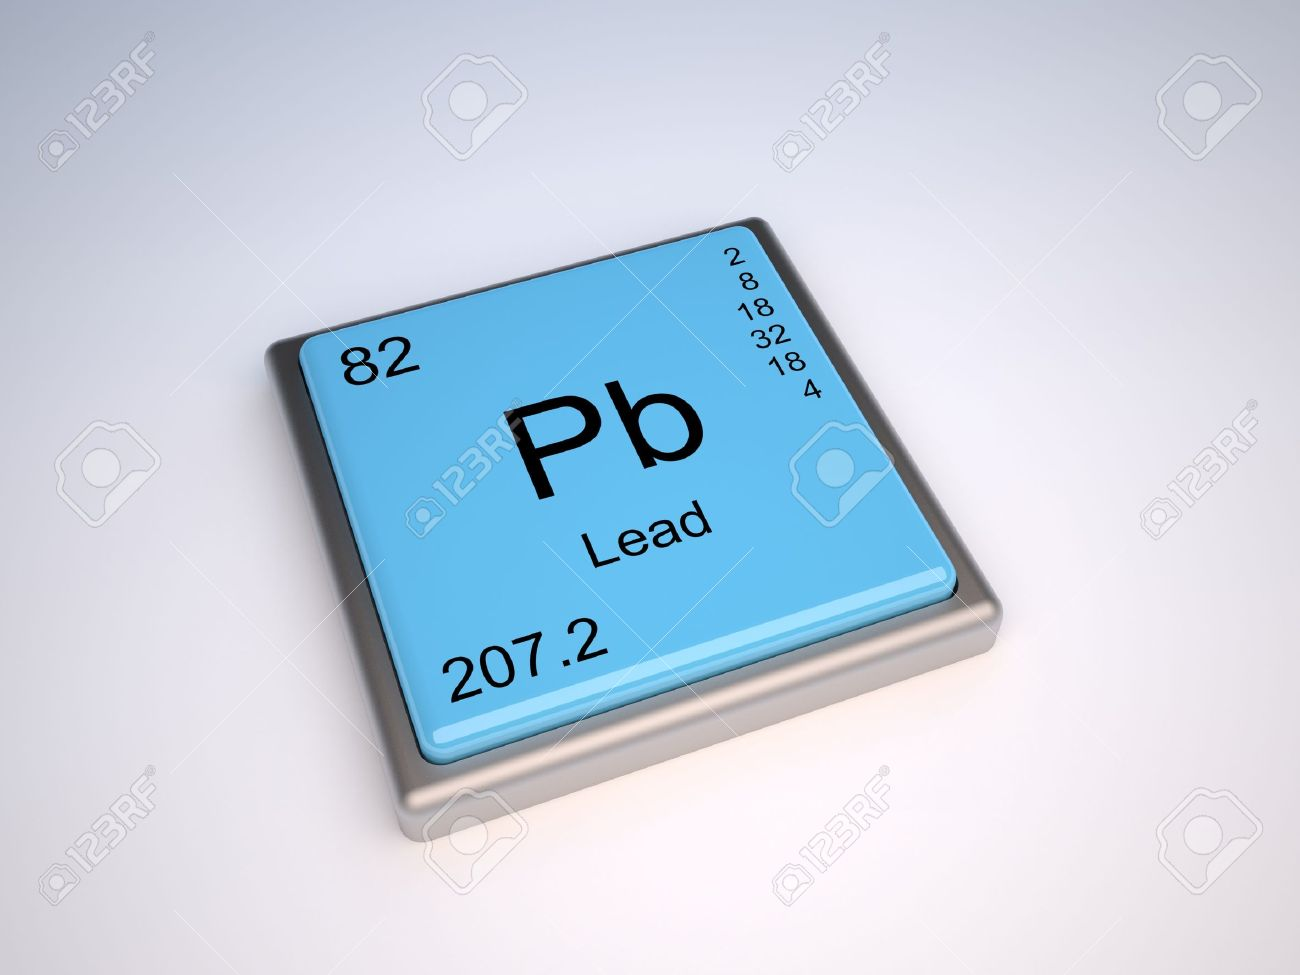 Symbol pb periodic table choice image periodic table images lead chemical element of the periodic table with symbol pb stock lead chemical element of the gamestrikefo Gallery